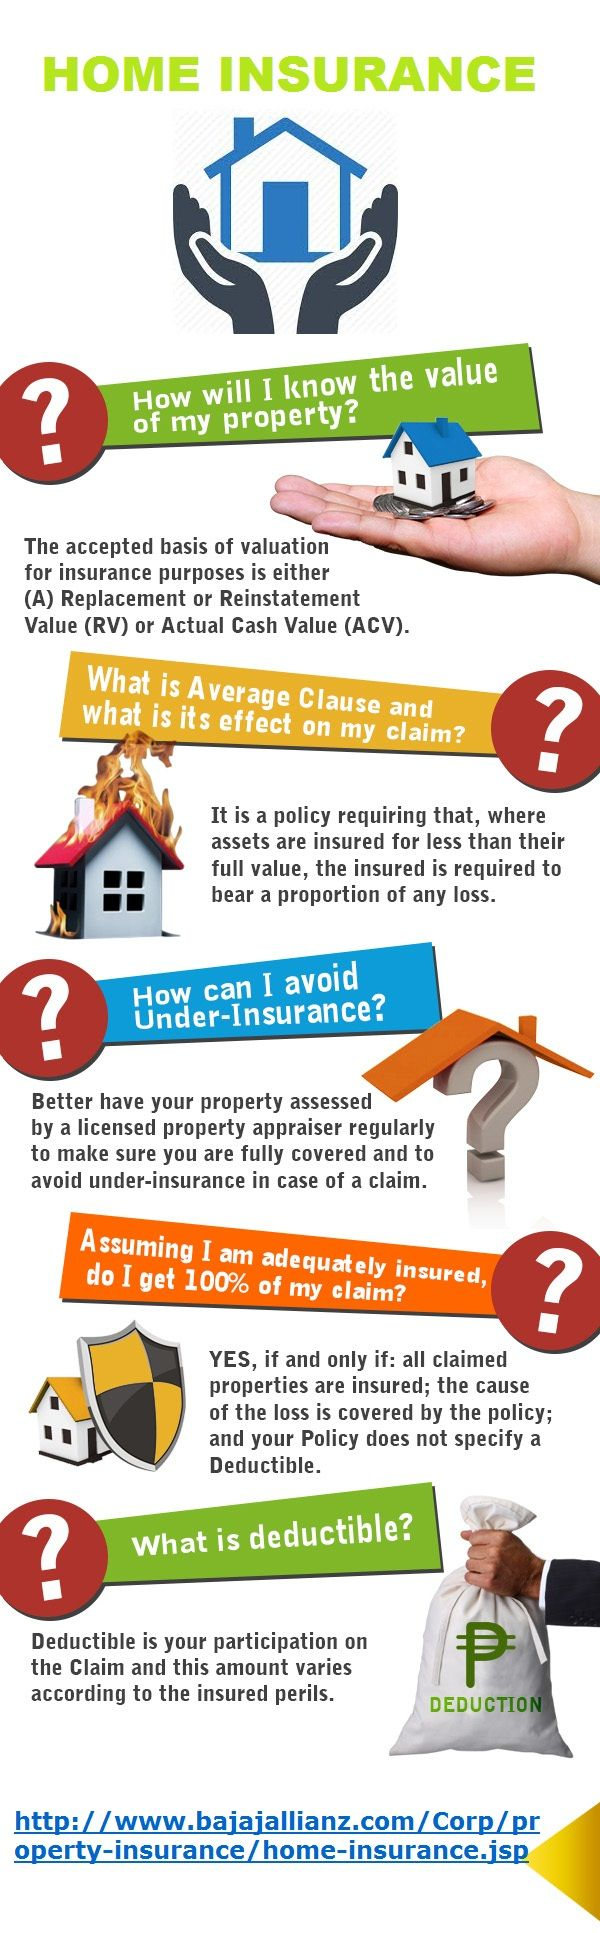 Buy Home Insurance / House Insurance Policy which will protect not only your home, but also the belongings / content inside it.